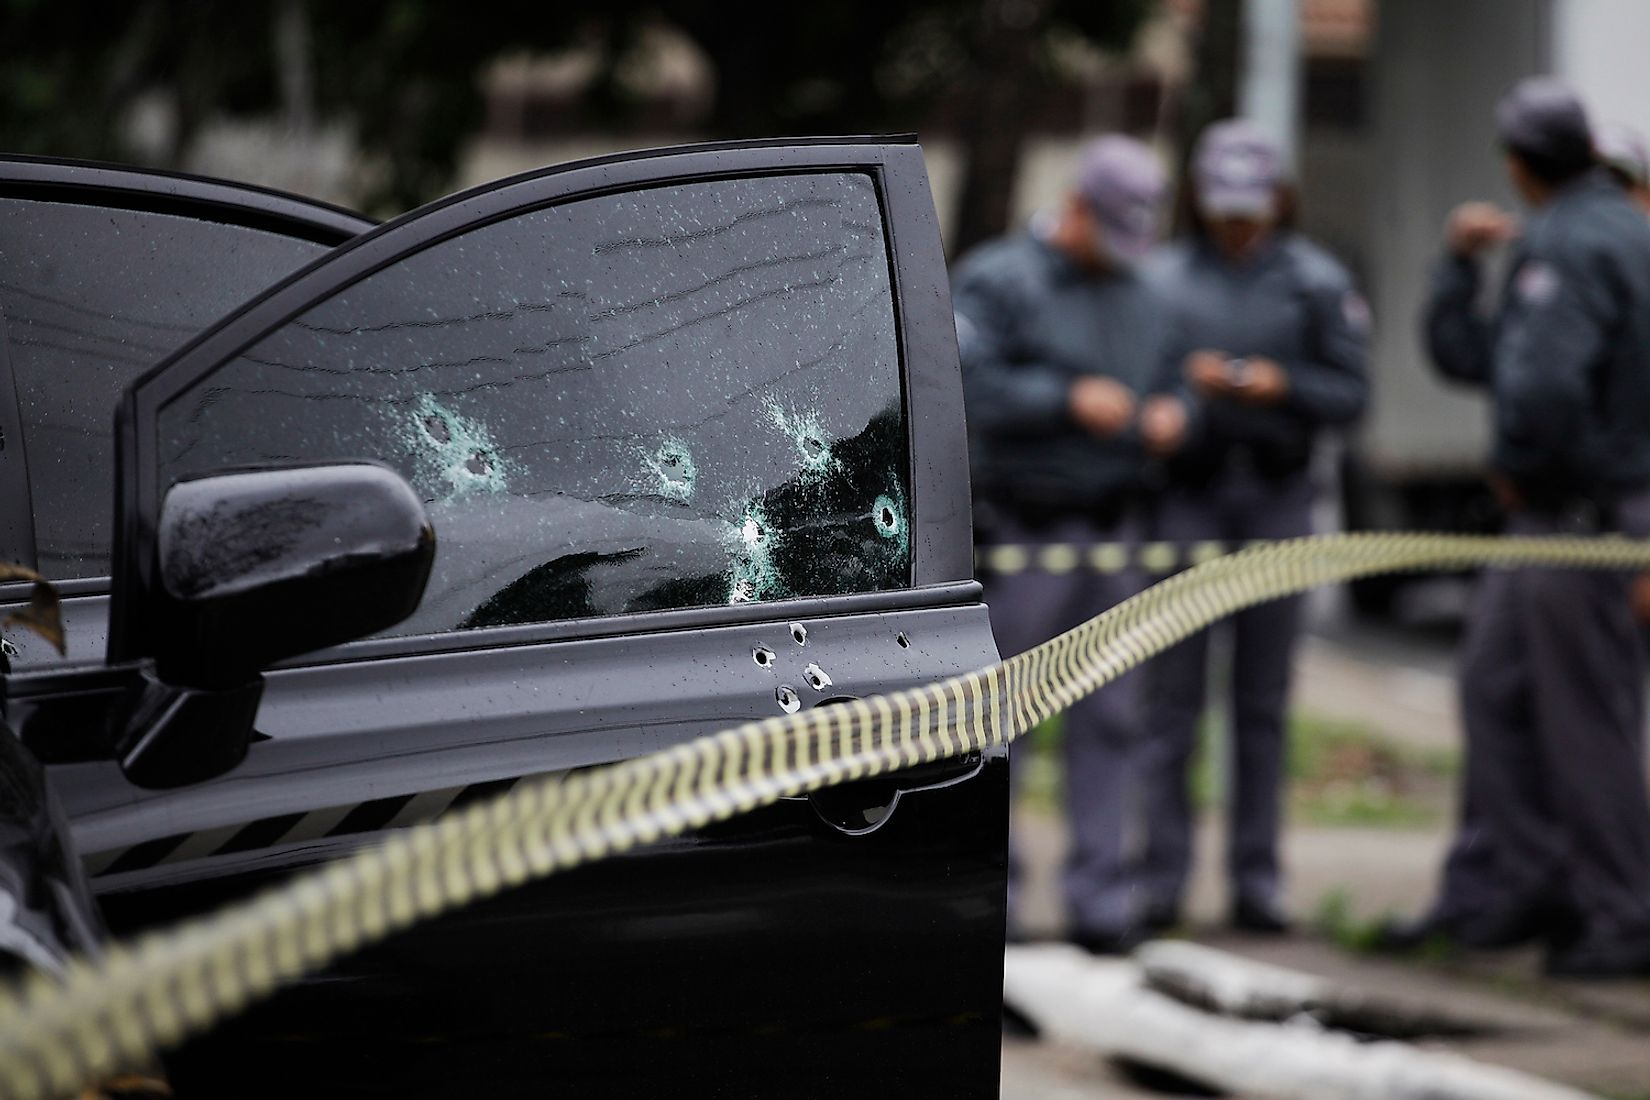 Bullet holes are seen in the window of a car after an armed robbery in Sao Paulo, Brazil. Image credit: Nelson Antoine/Shutterstock.com